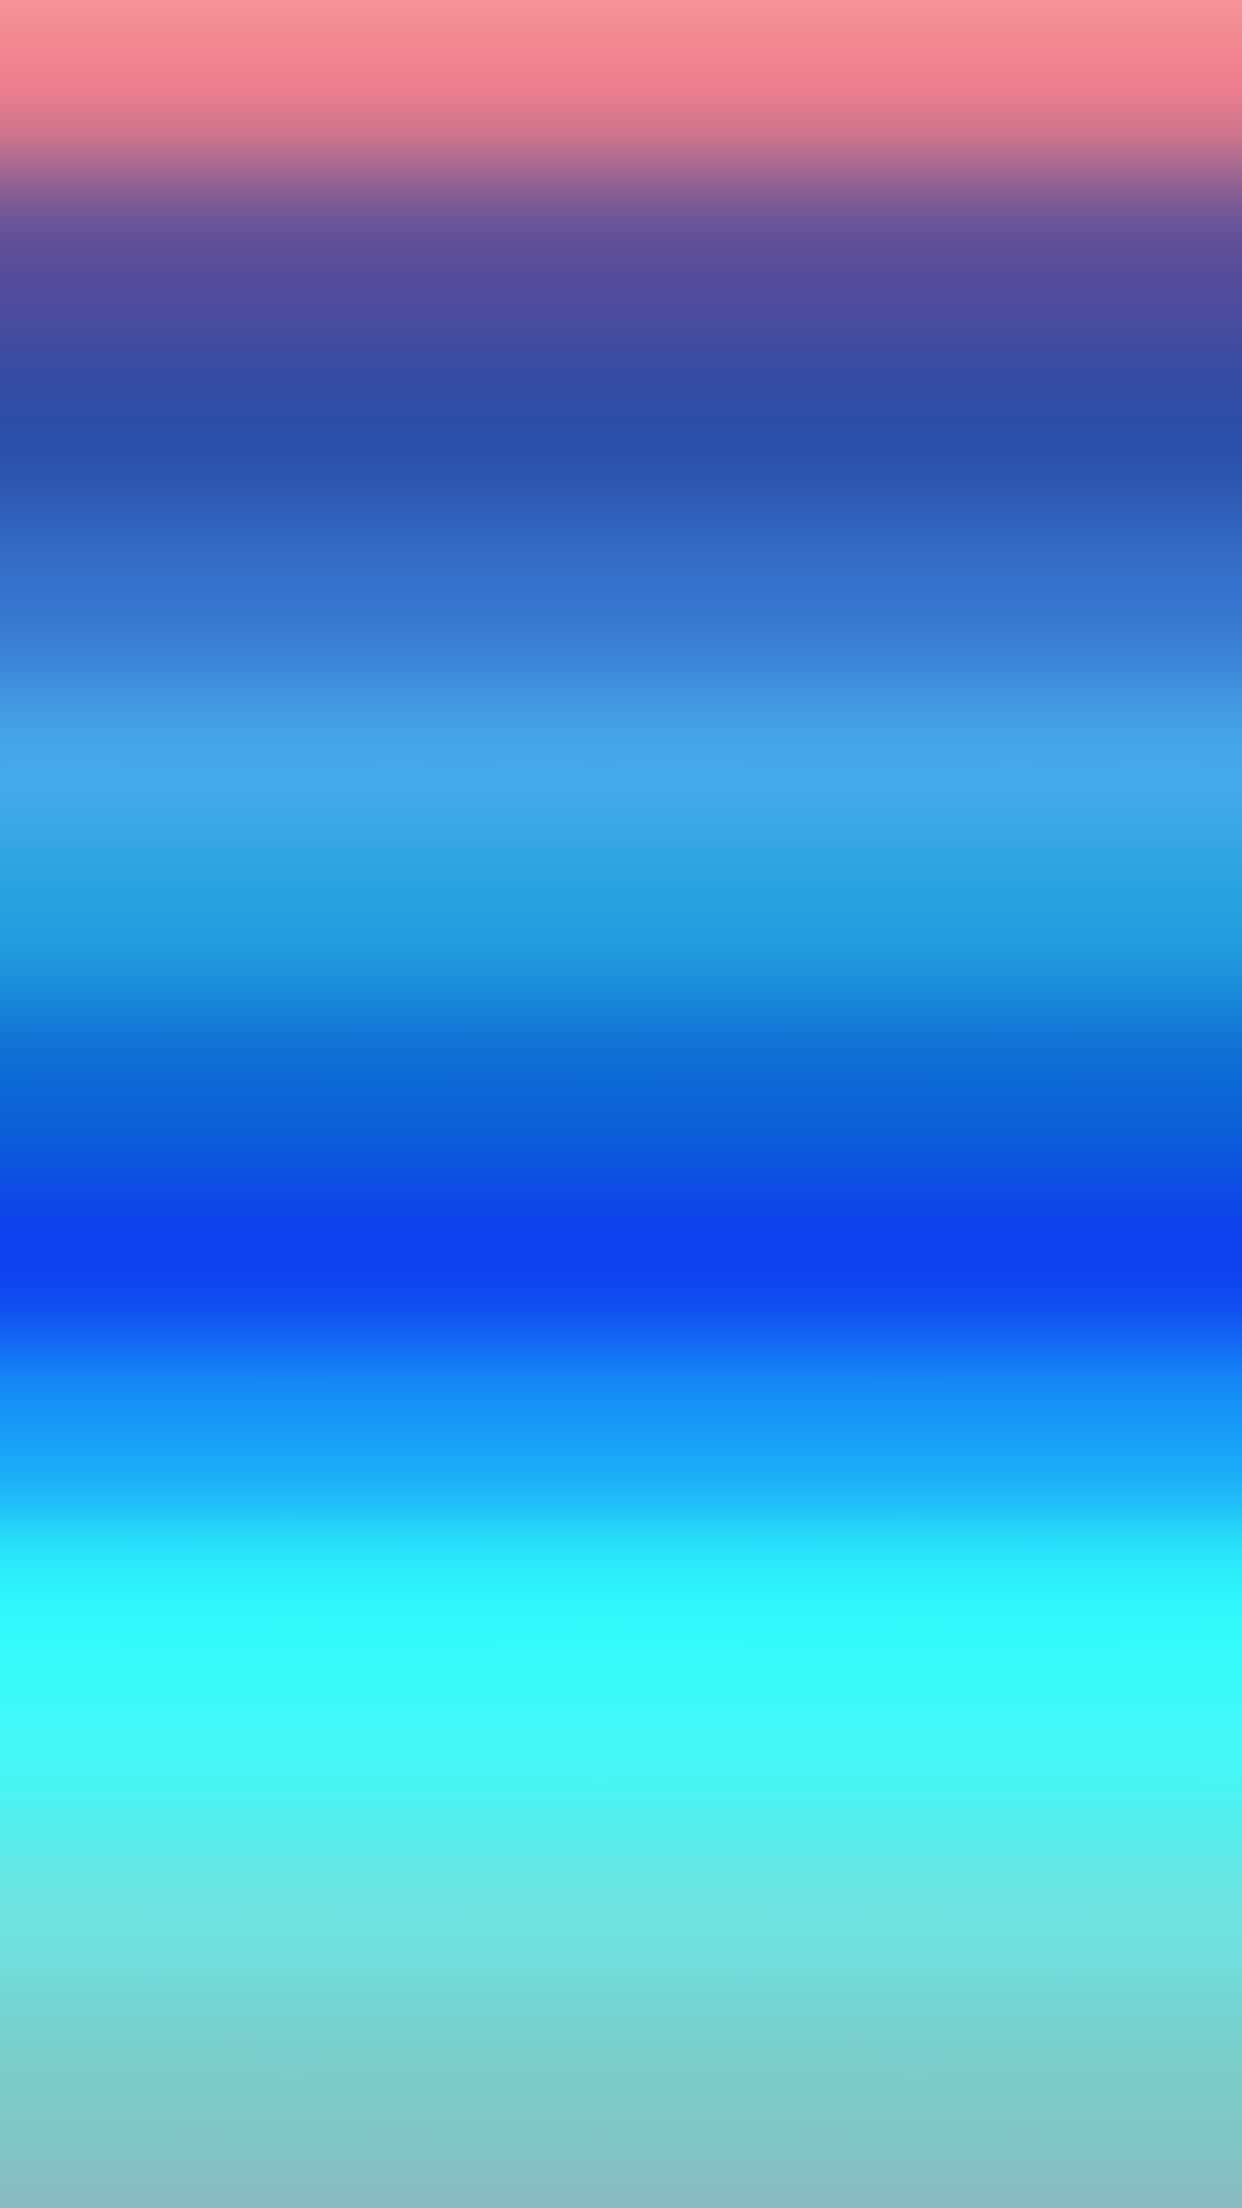 Lines Abstract Rainbow Blue Gradation Blur Android wallpaper